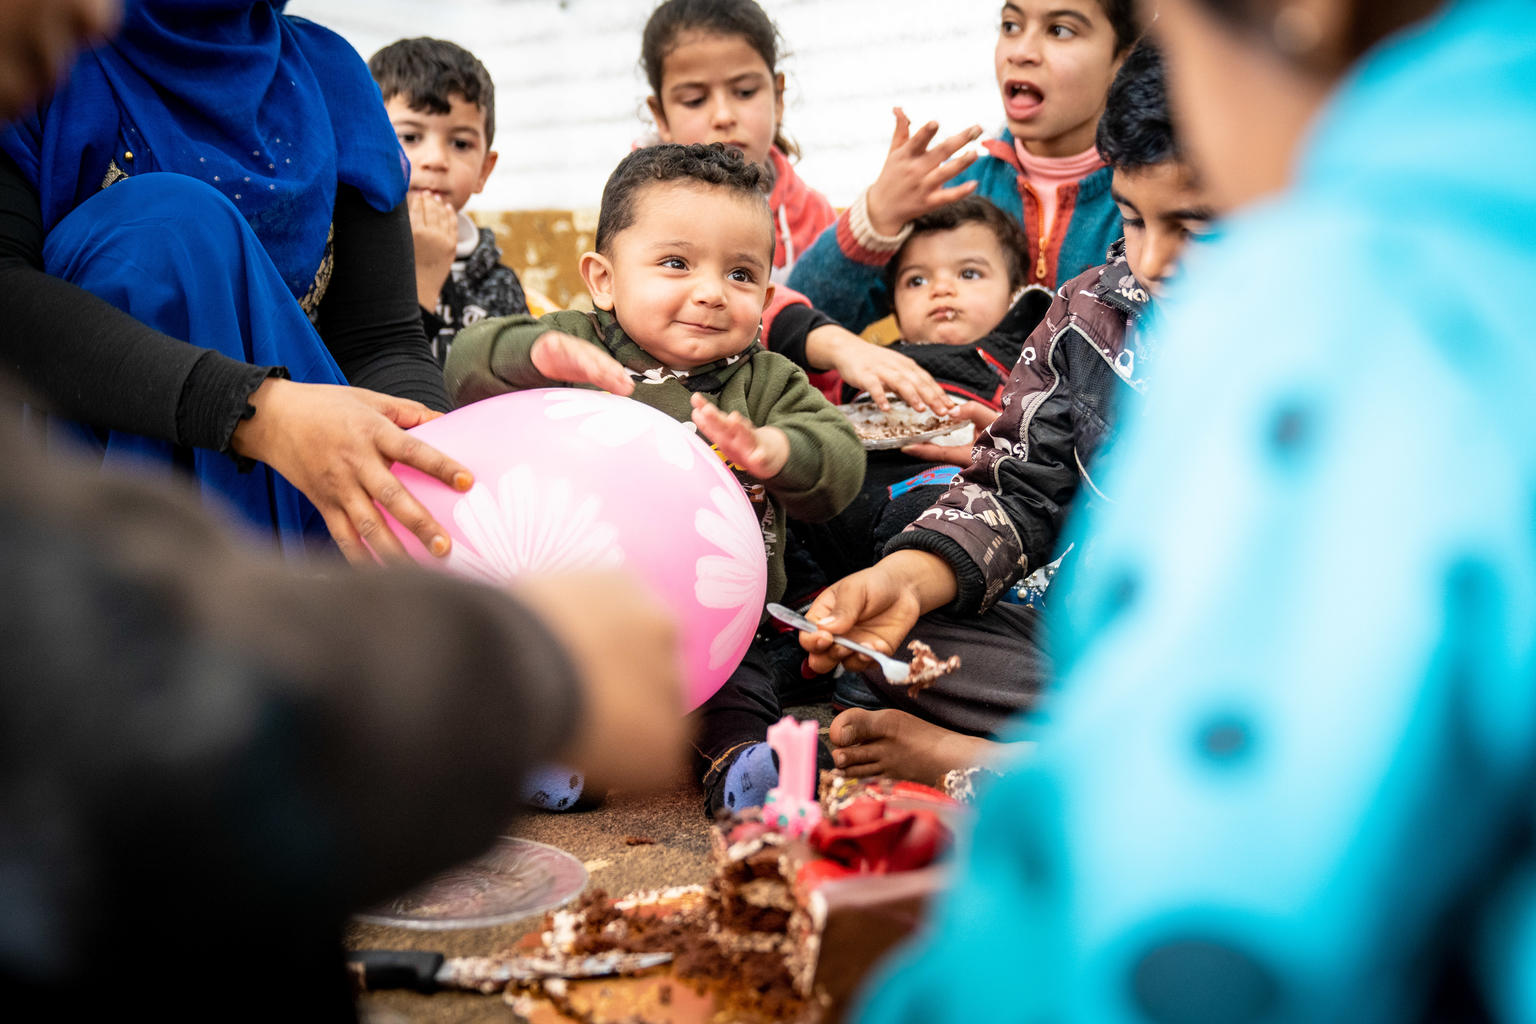 One-year-old Mohammad celebrates his first birthday in Azraq refugee camp in Jordan, where he was born in the UNICEF-supported pediatric ward.